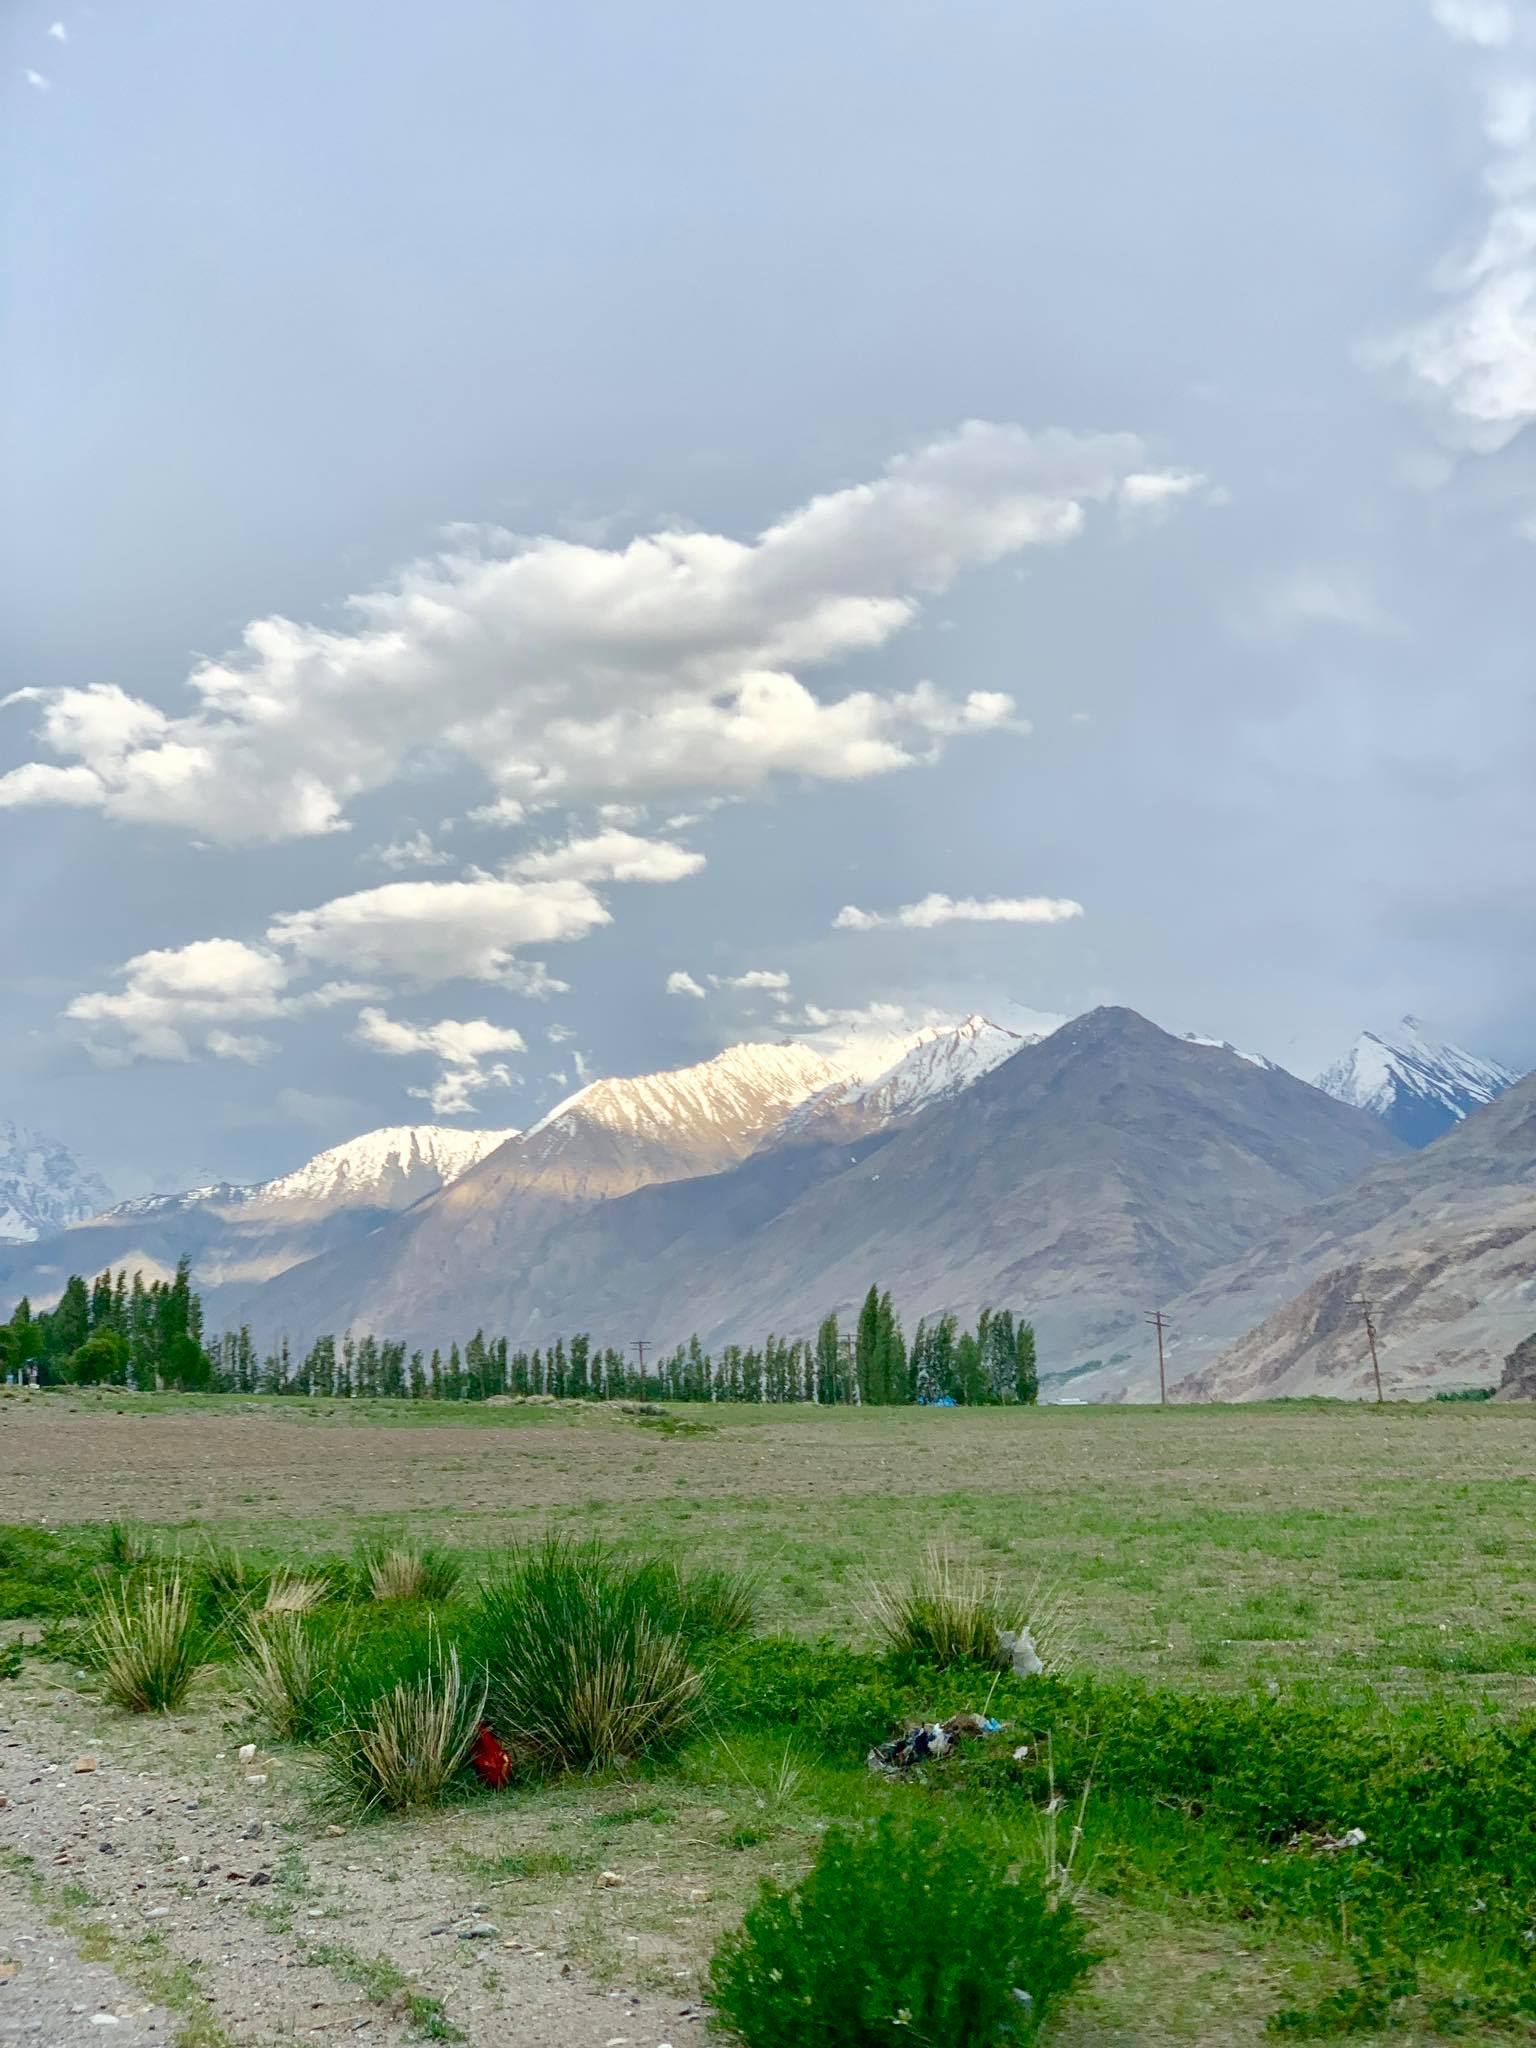 Kach Solo Travels in 2019 Driving from Ishkashim to Wakhan Valley15.jpg